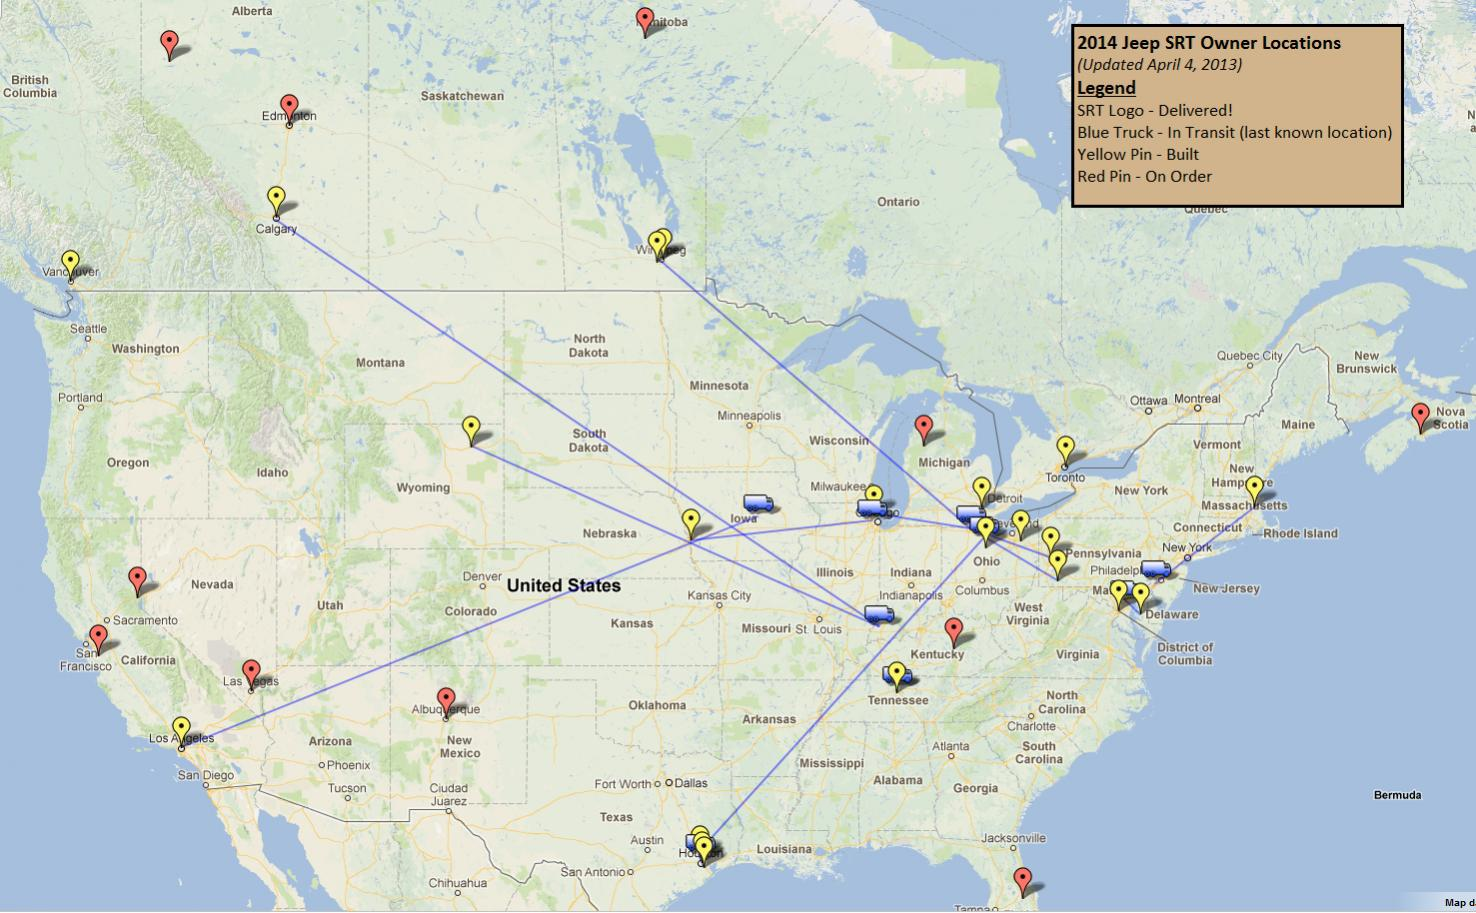 2014 SRT Owners Map 2013 04 04